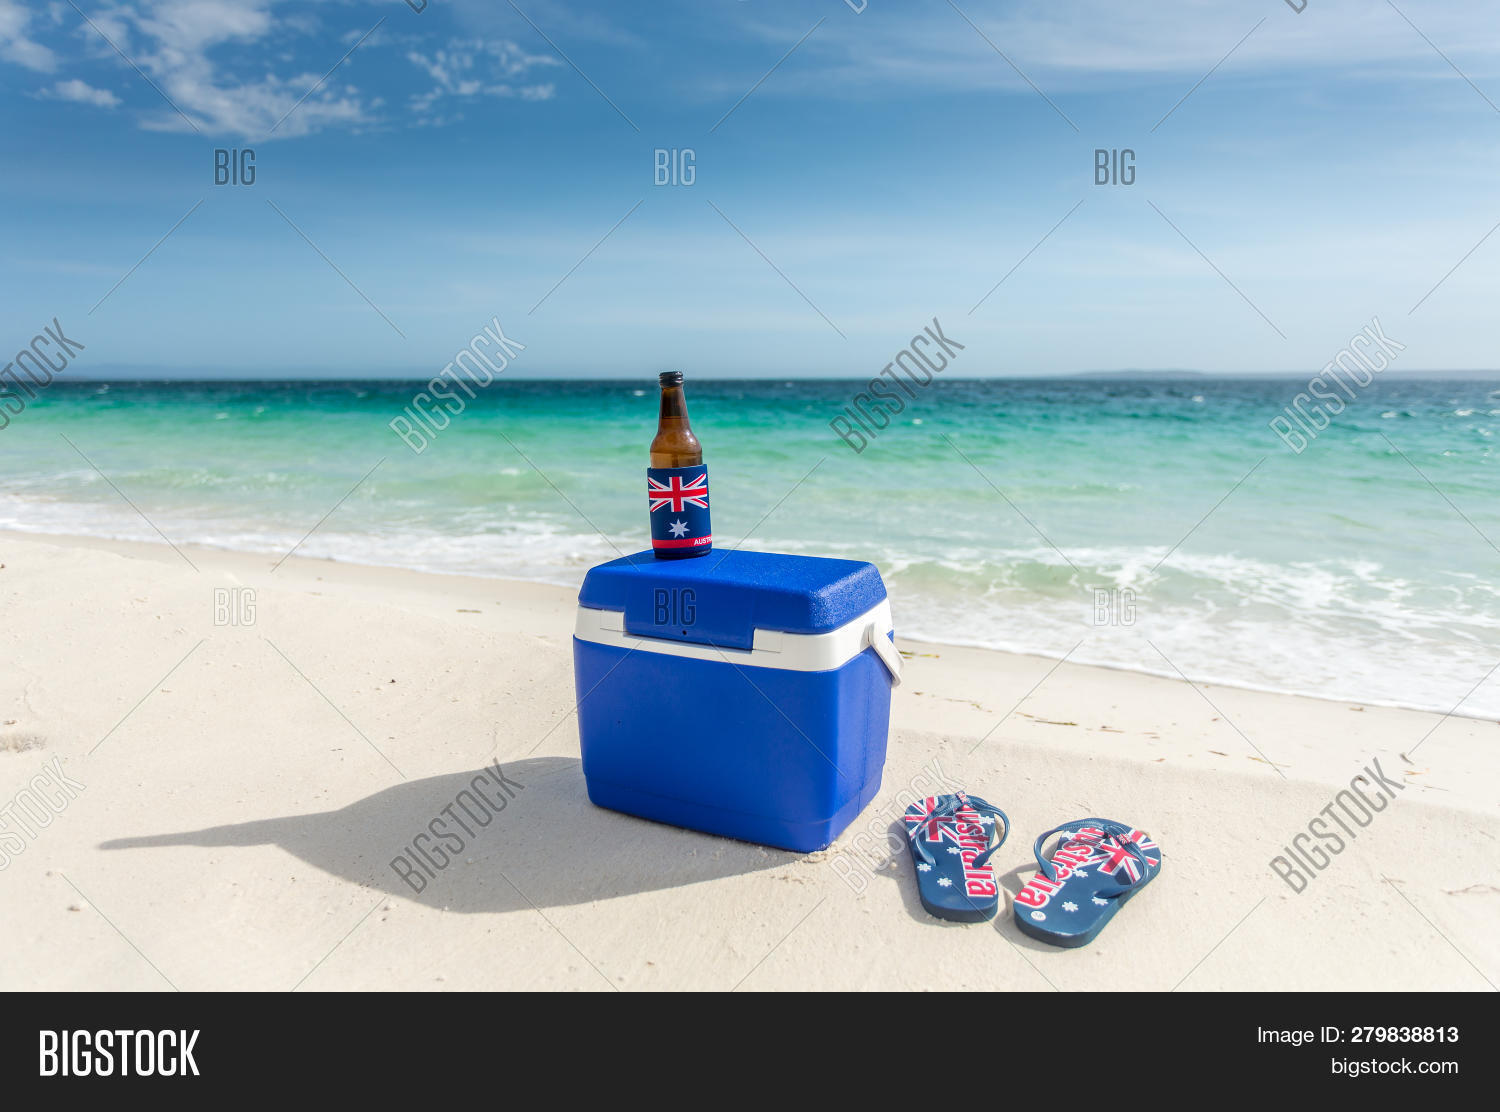 Chilling Out On Beach Image & Photo (Free Trial) | Bigstock